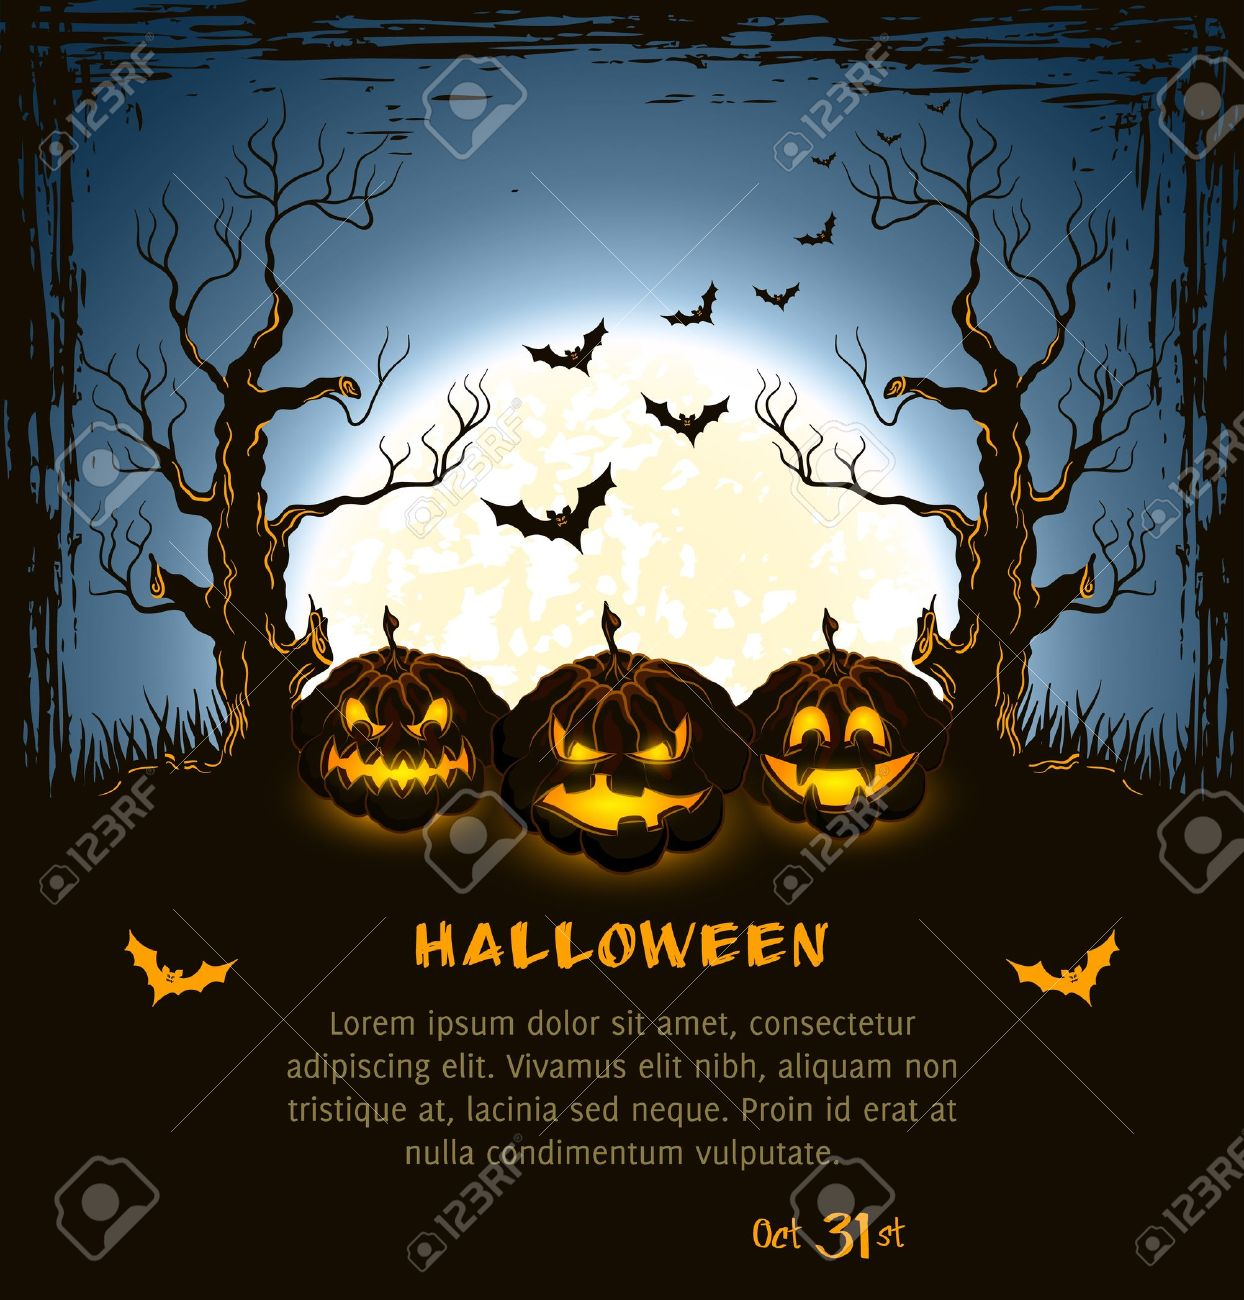 Blue grungy halloween background with spooky pumpkins, full moon, trees and bats Stock Vector - 15362619